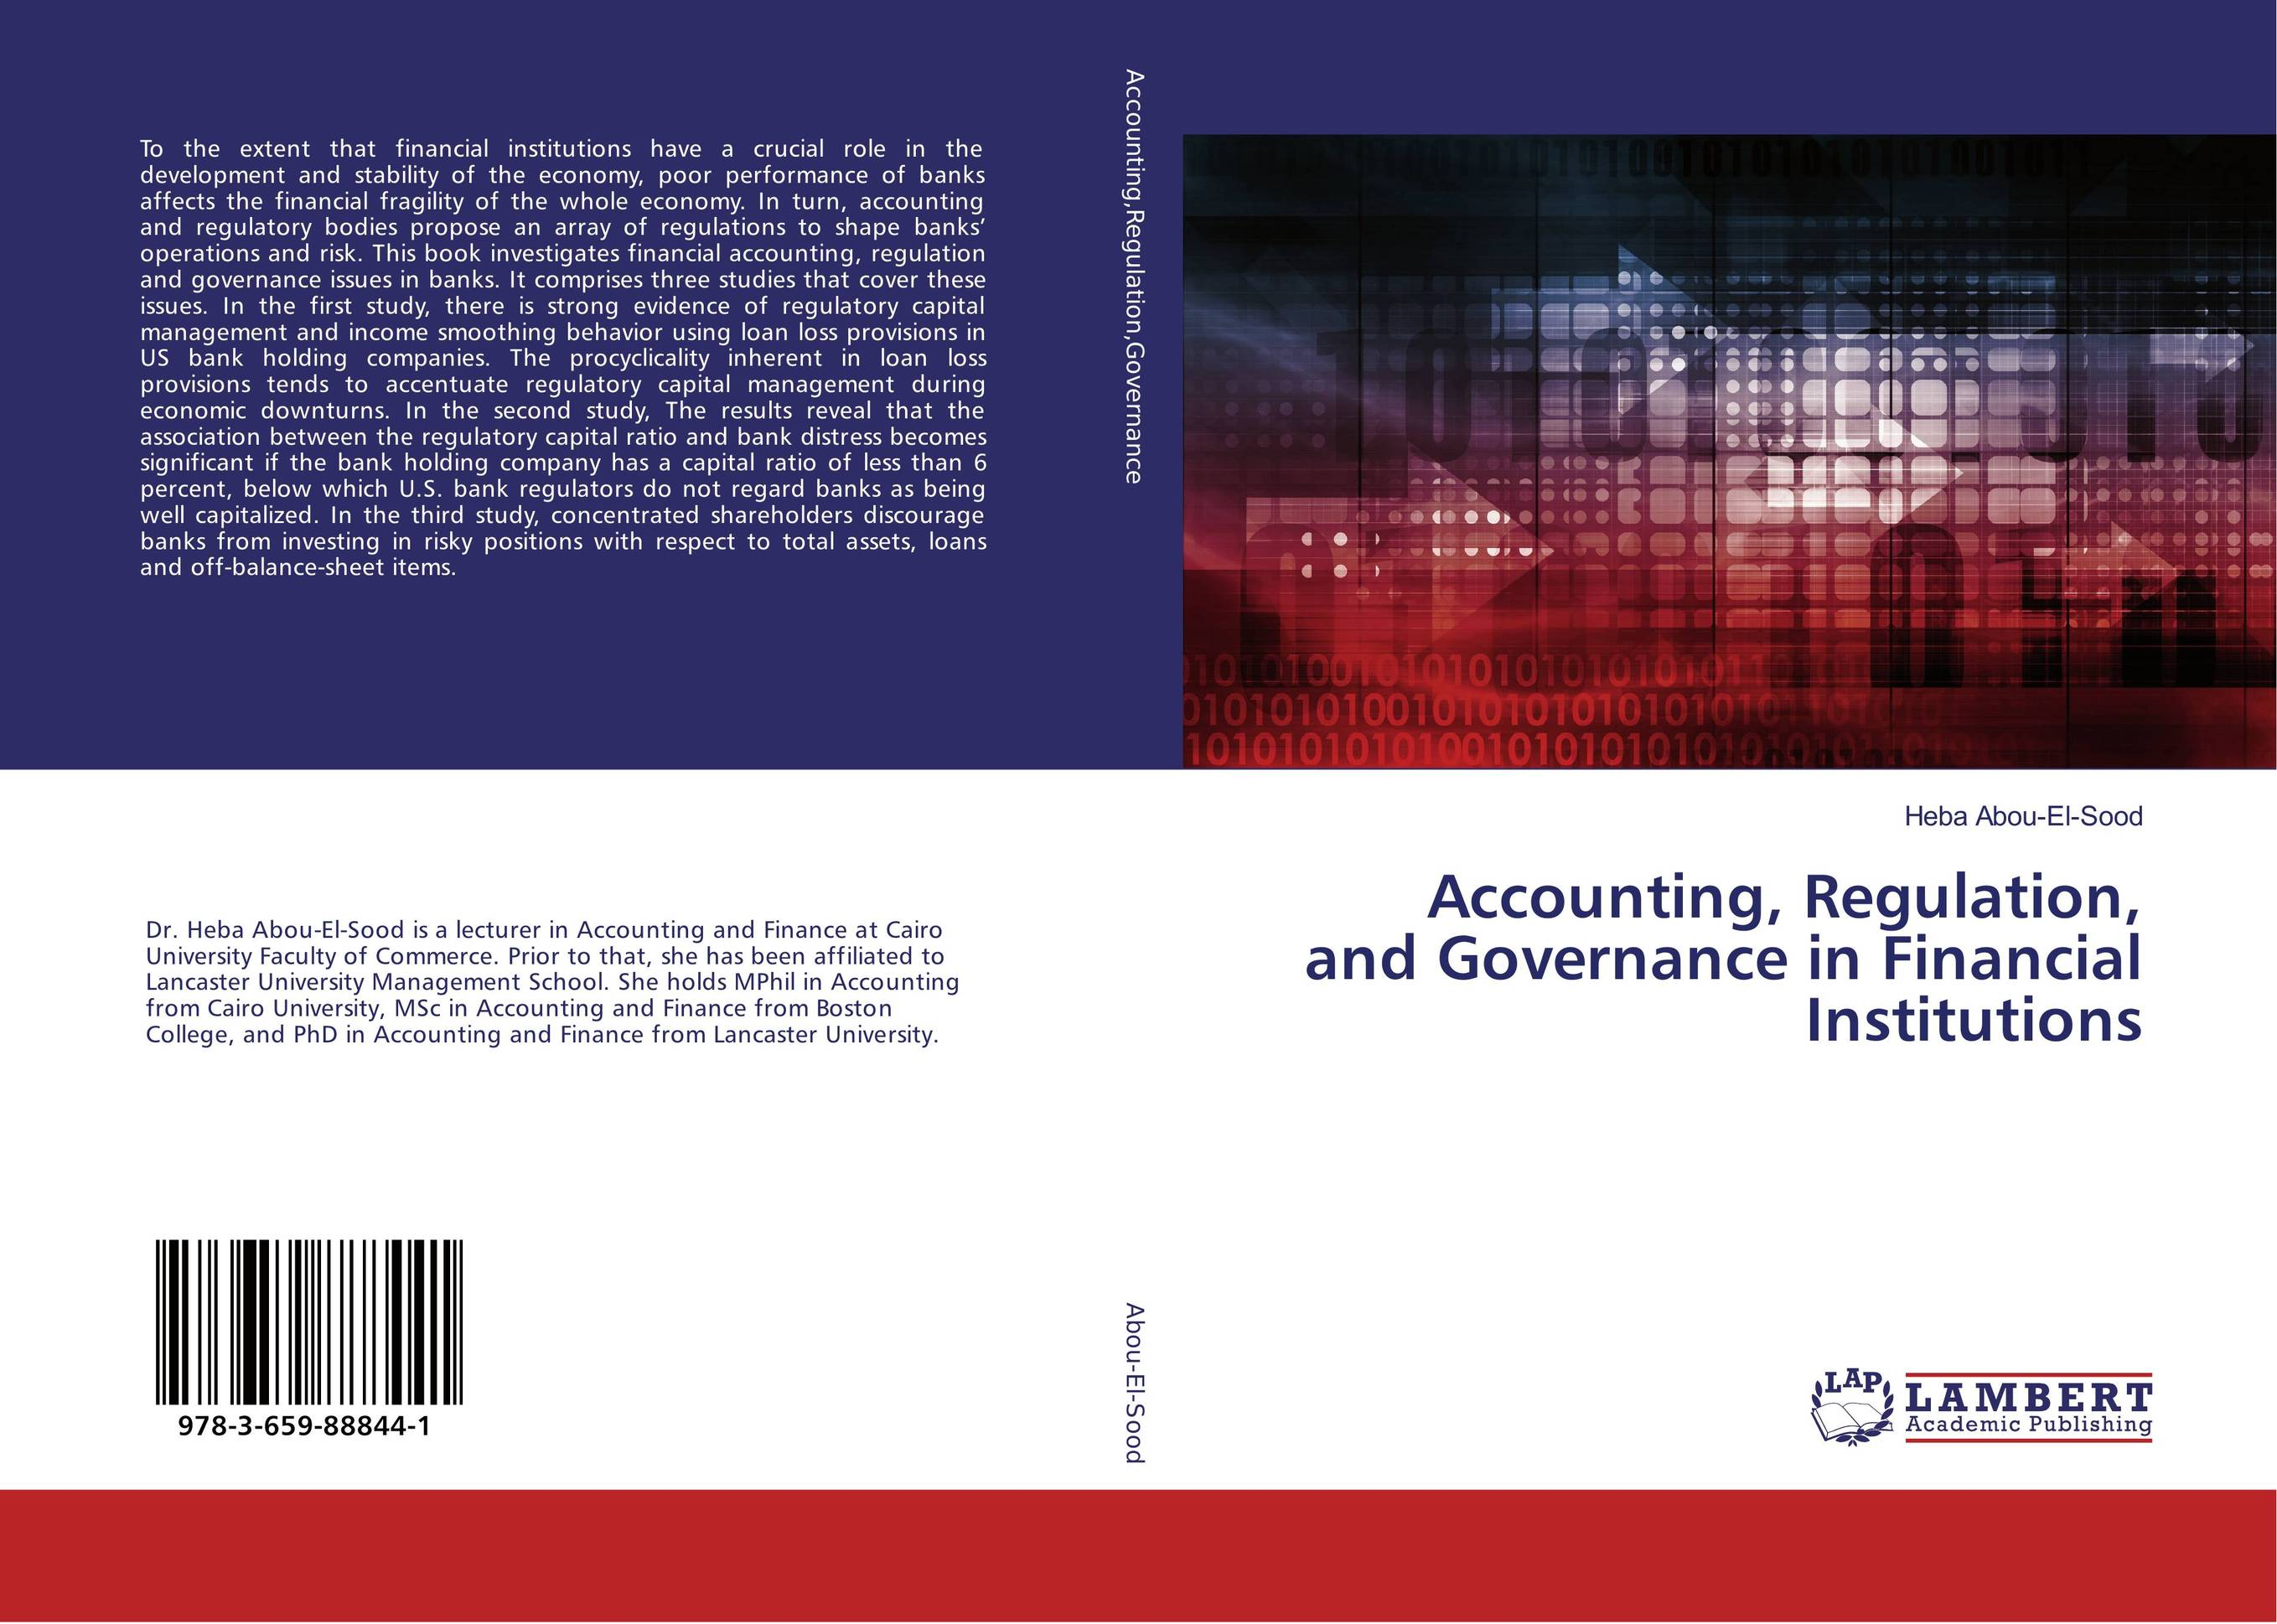 Accounting, Regulation, and Governance in Financial Institutions capital structure and risk dynamics among banks